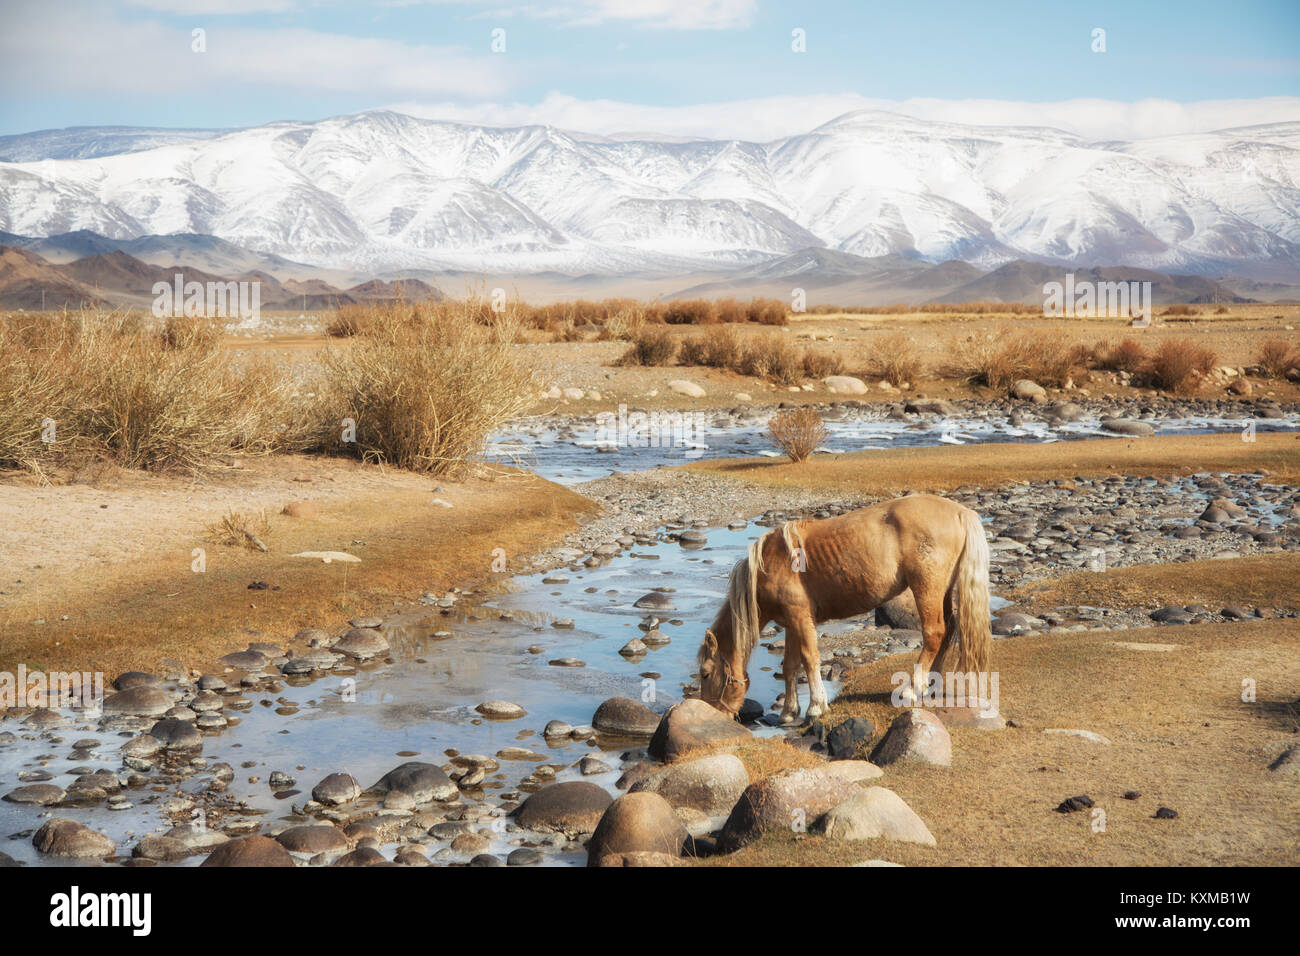 Mongolian blonde horse drinking from river Mongolia steppes grasslands snowy mountains winter - Stock Image